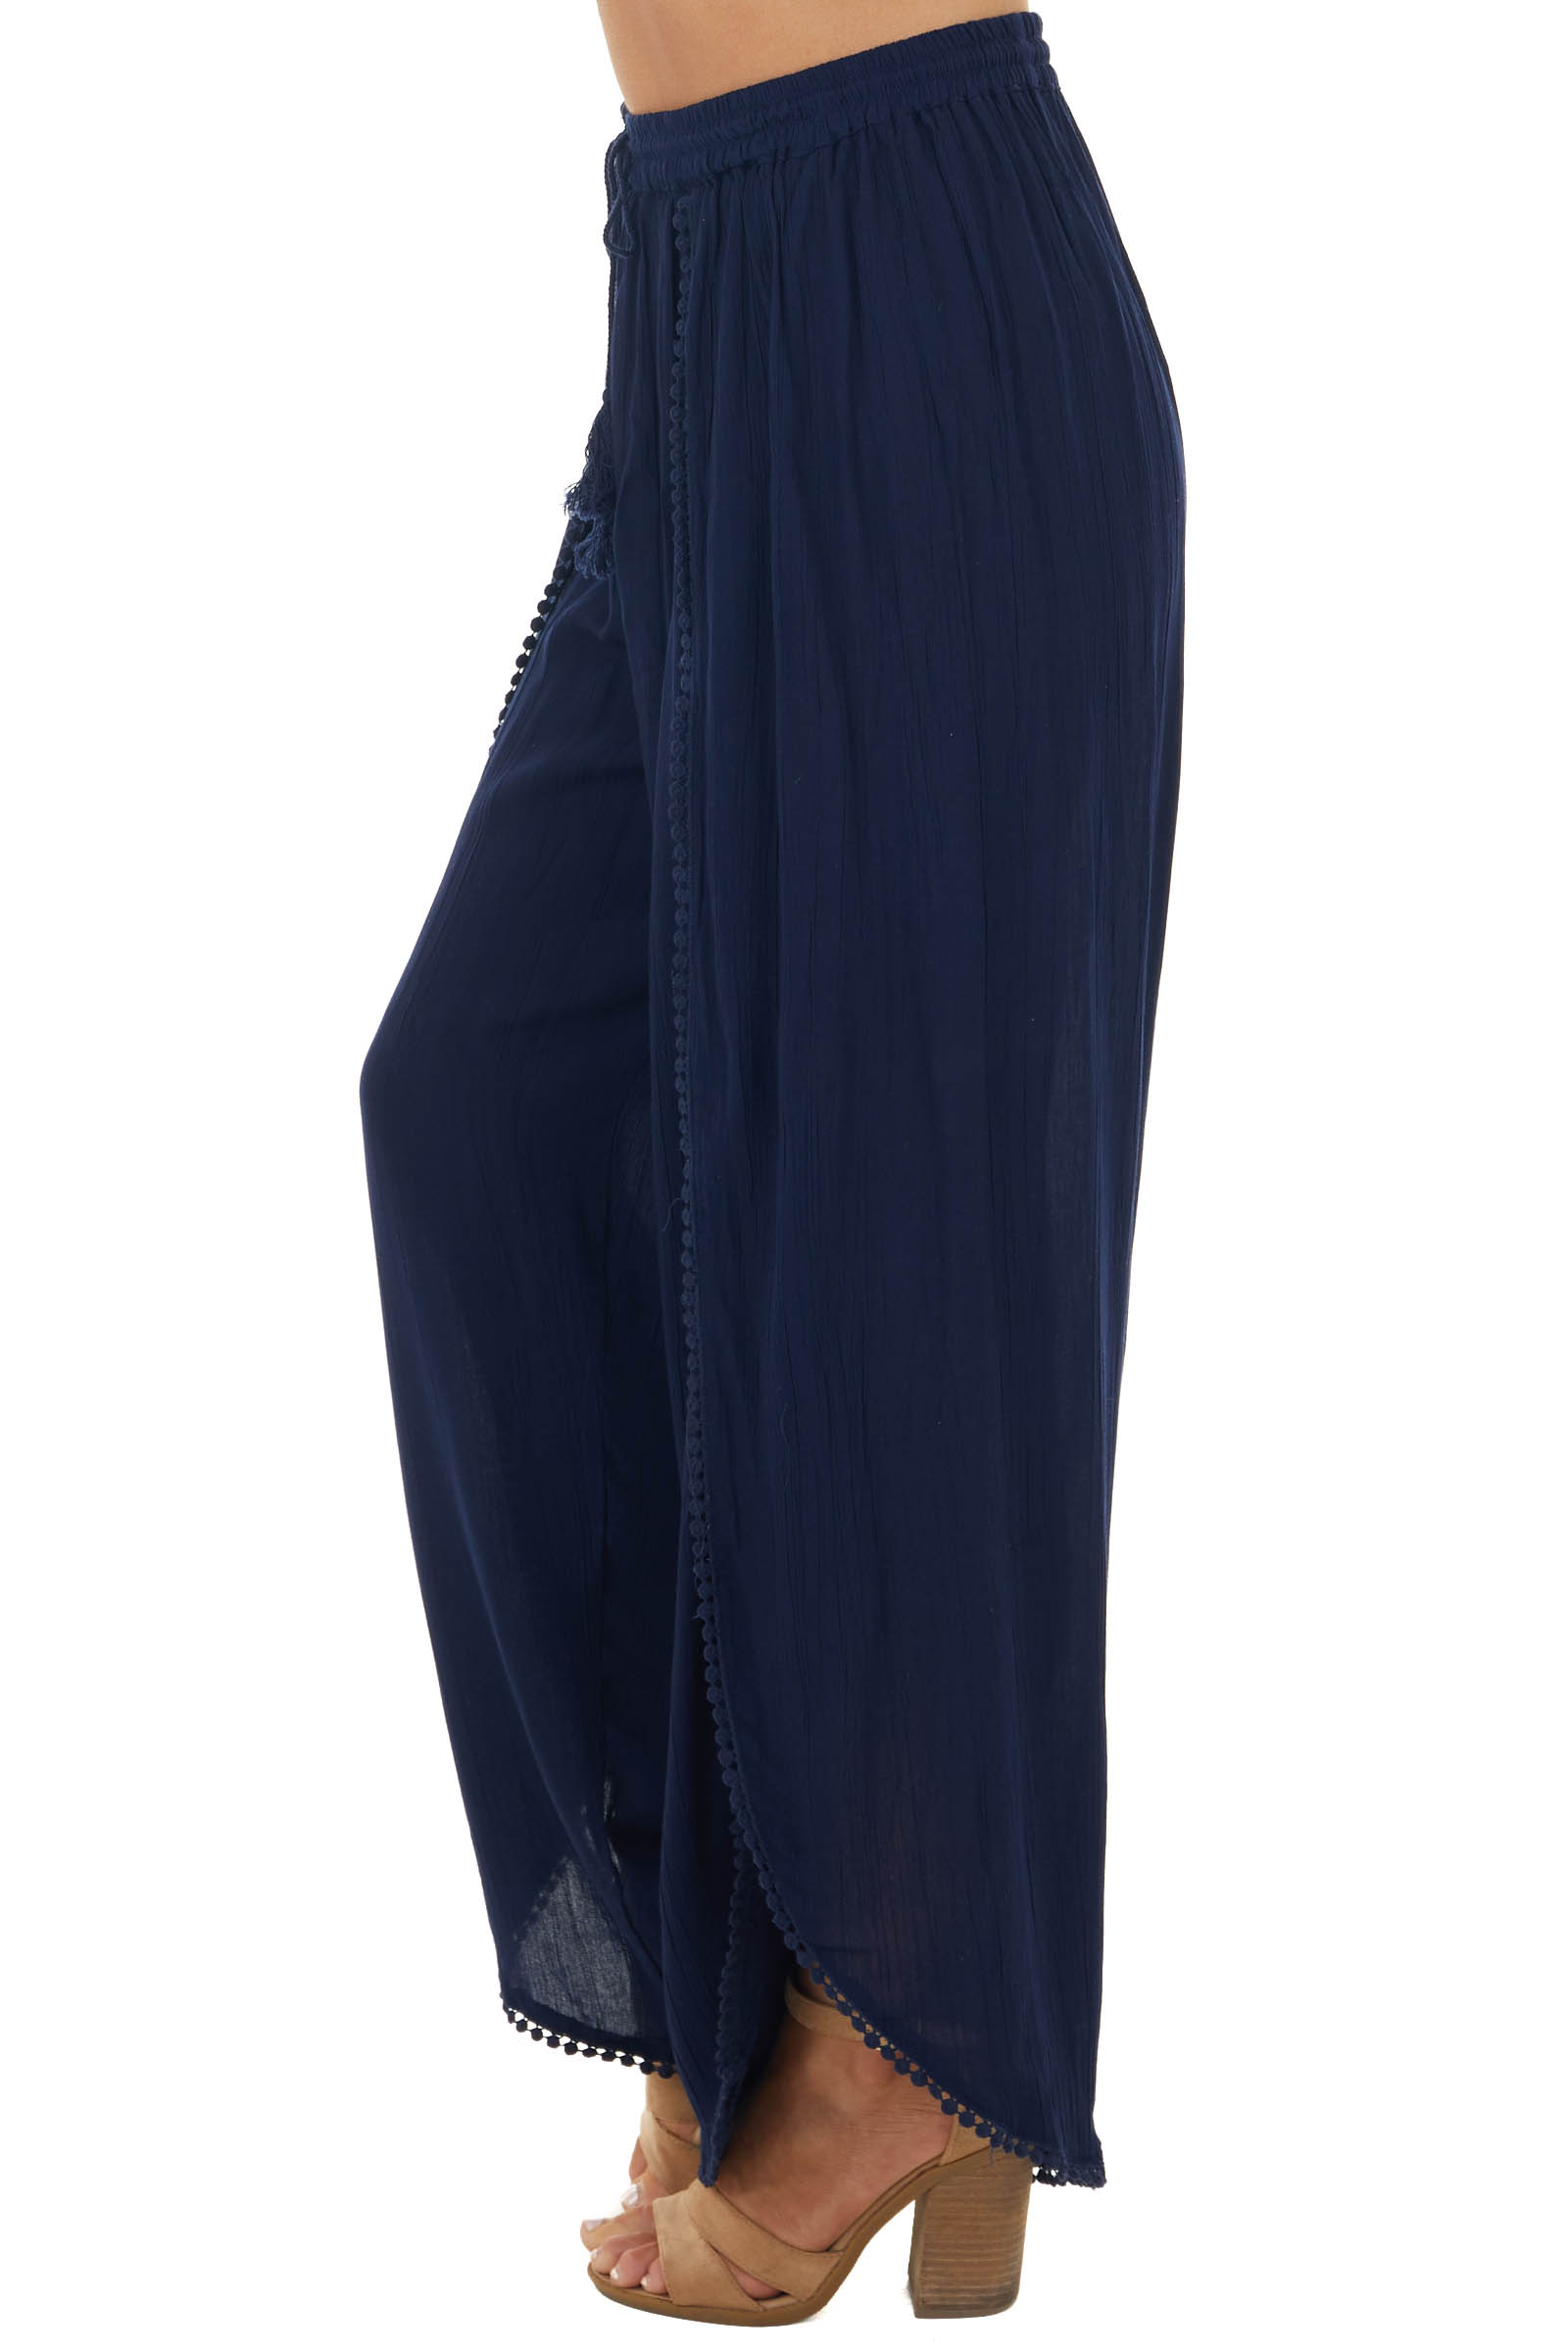 Navy Open Leg Wrap Pants with Tassel and Lace Details